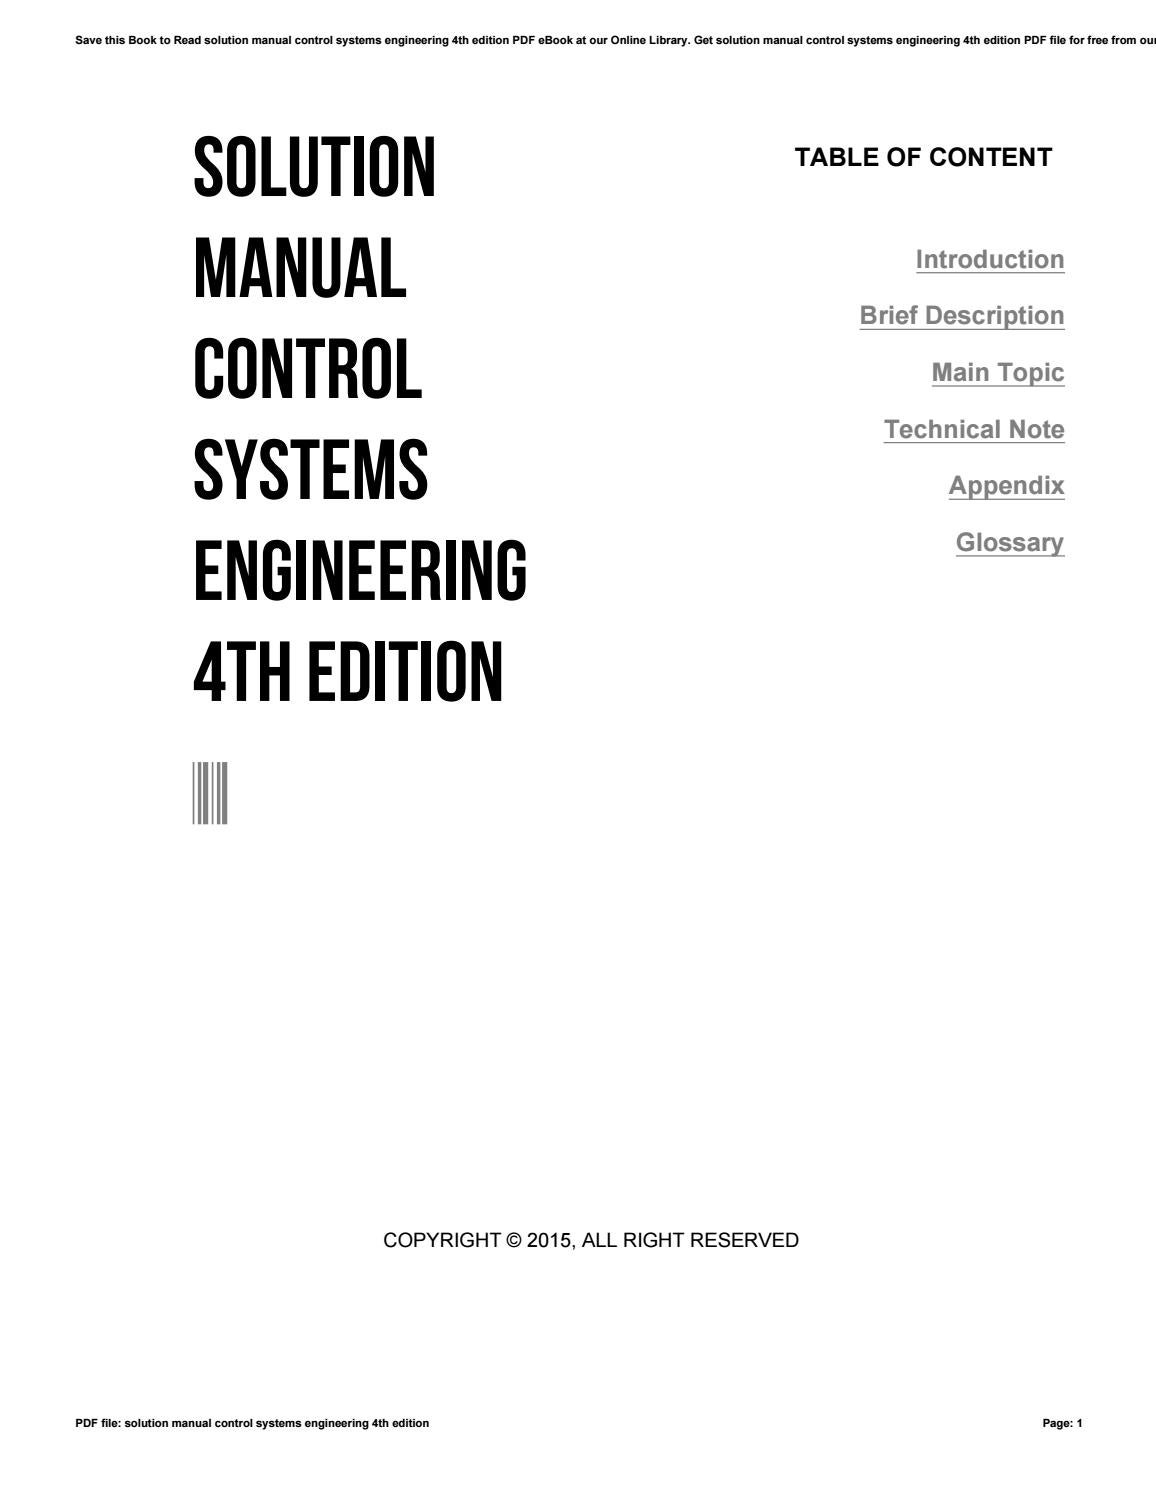 Solution manual control systems engineering 4th edition by 4tb683 - issuu